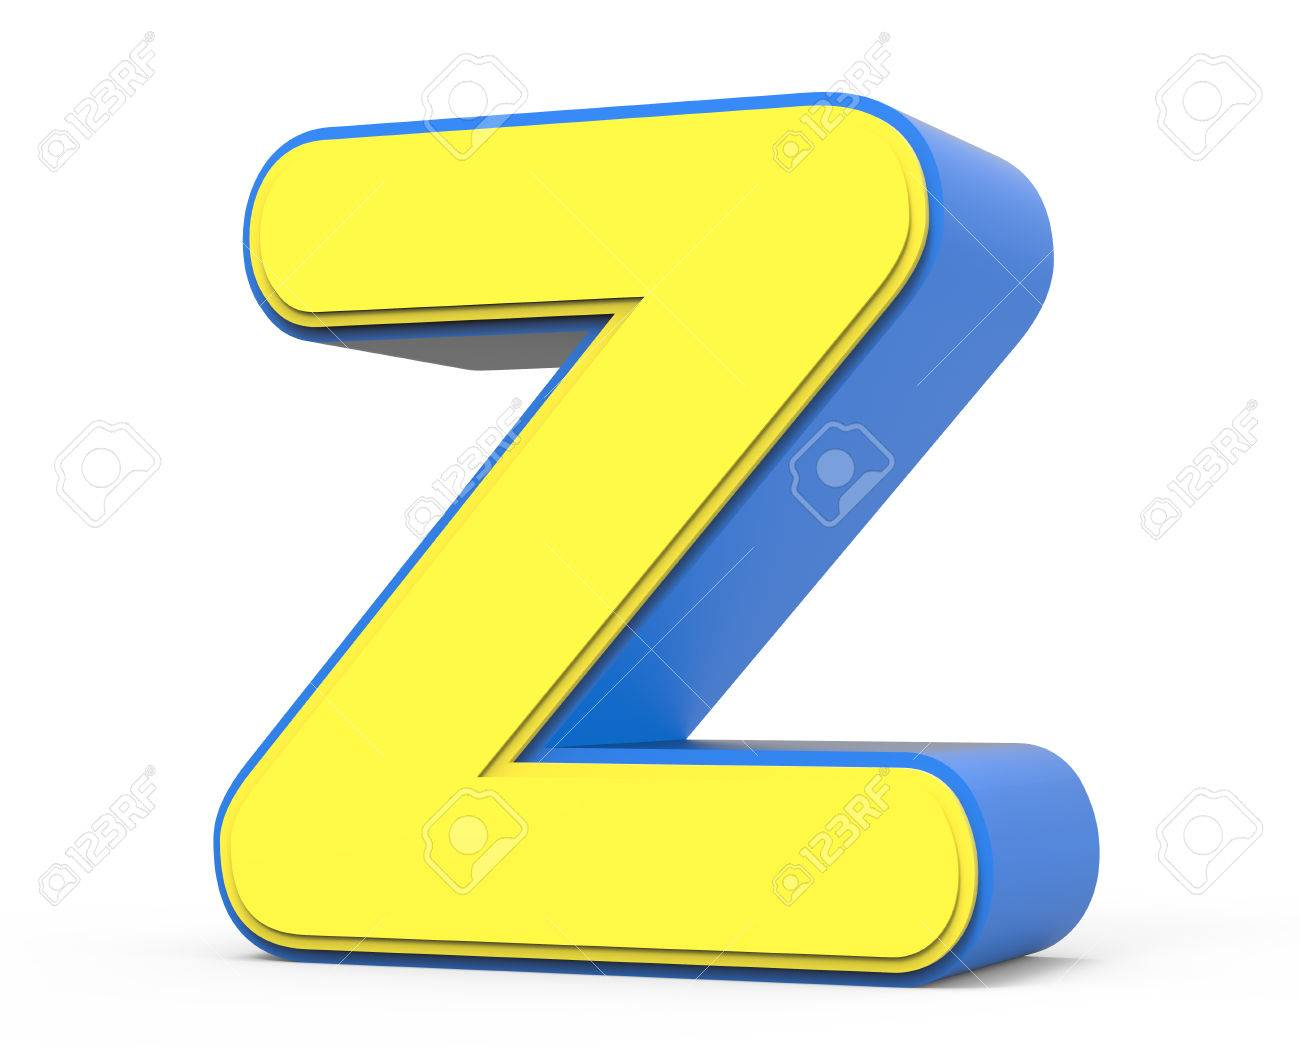 Right Leaning 3d Rendering Cute Yellow Letter Z Isolated White